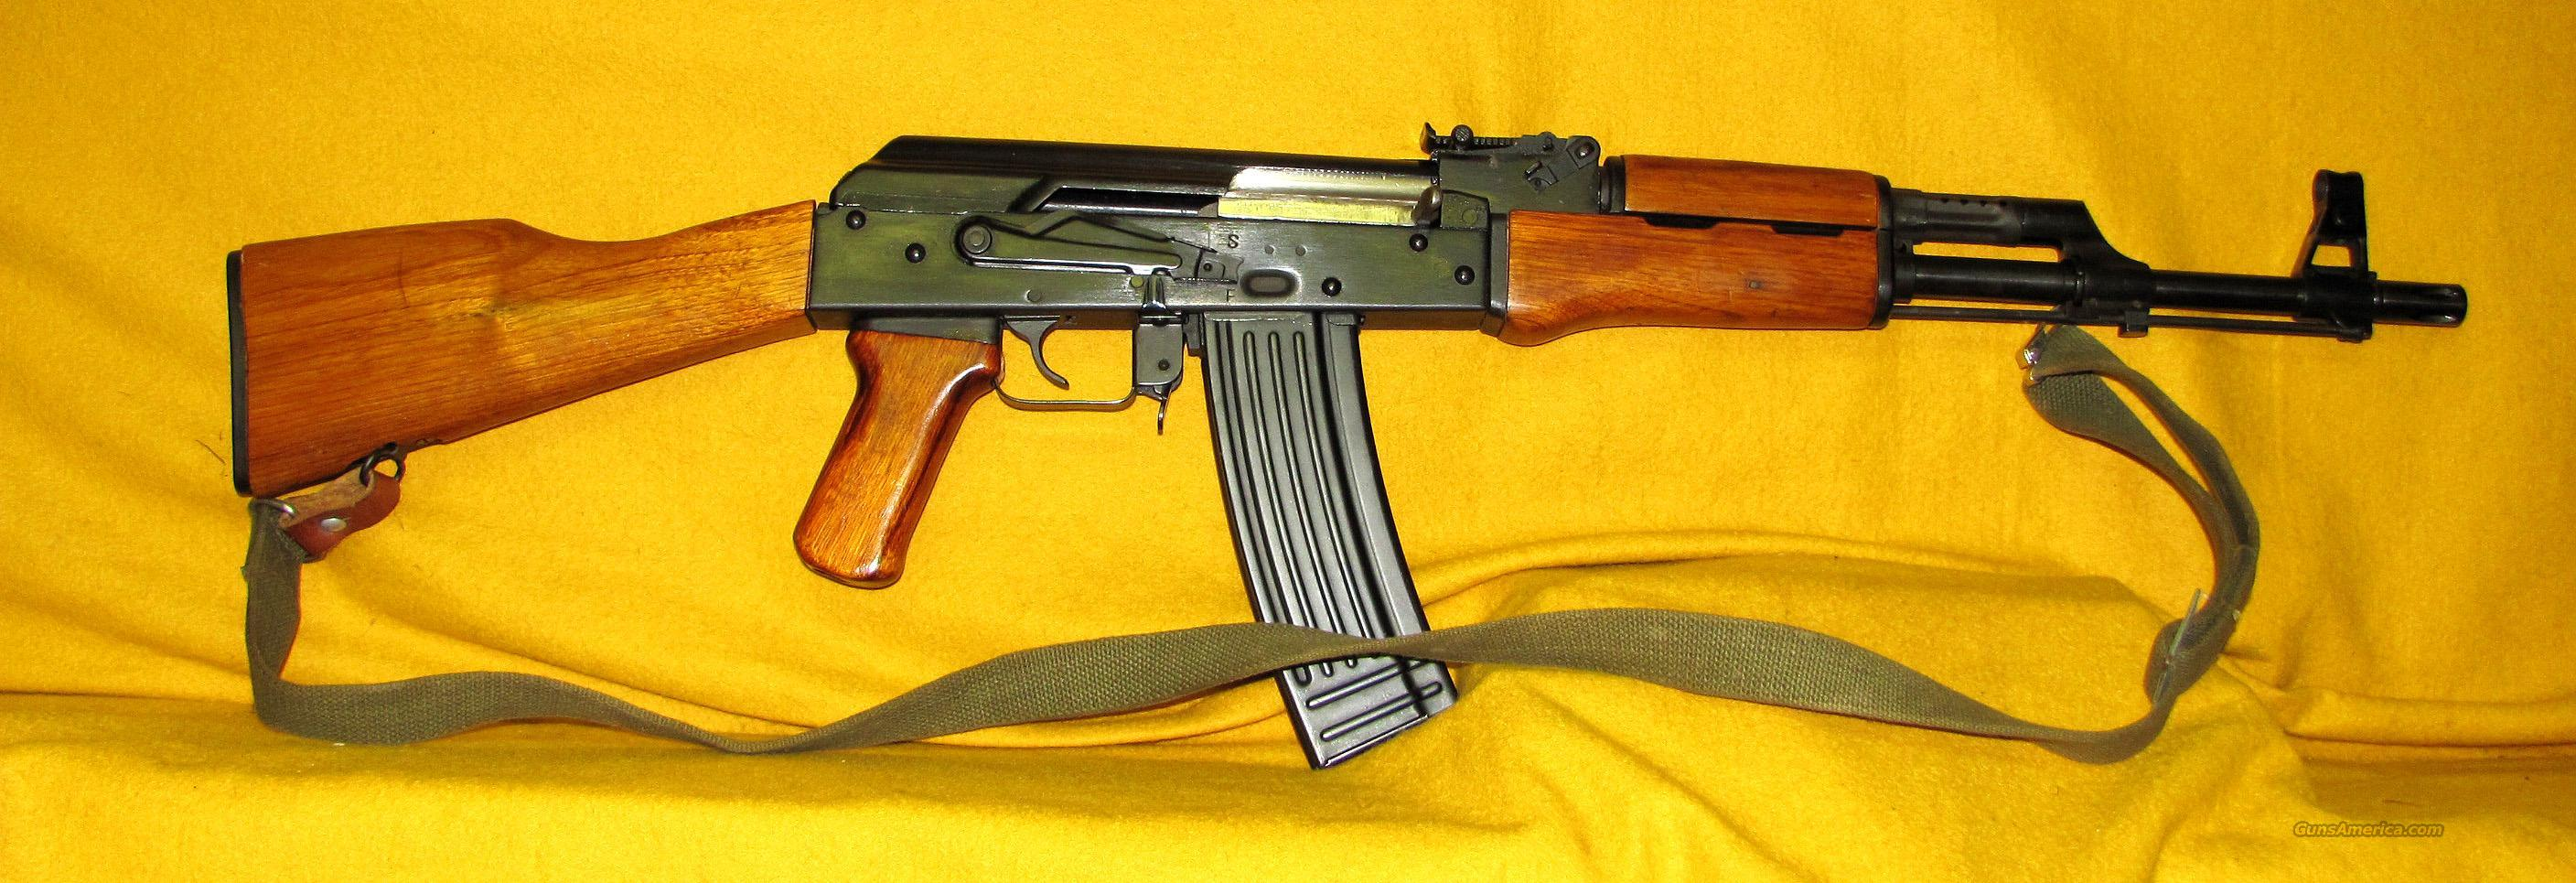 NORINCO AK 47  Guns > Rifles > AK-47 Rifles (and copies) > Full Stock